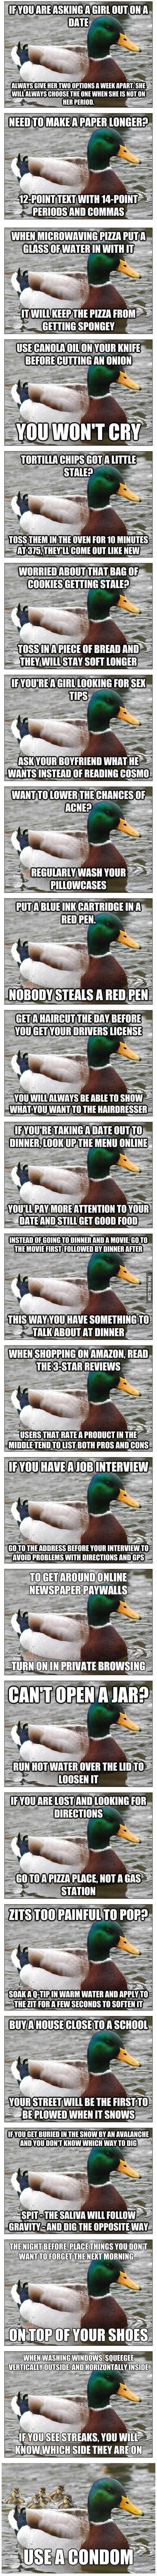 Bringing Actual Advice Mallard back to it's roots